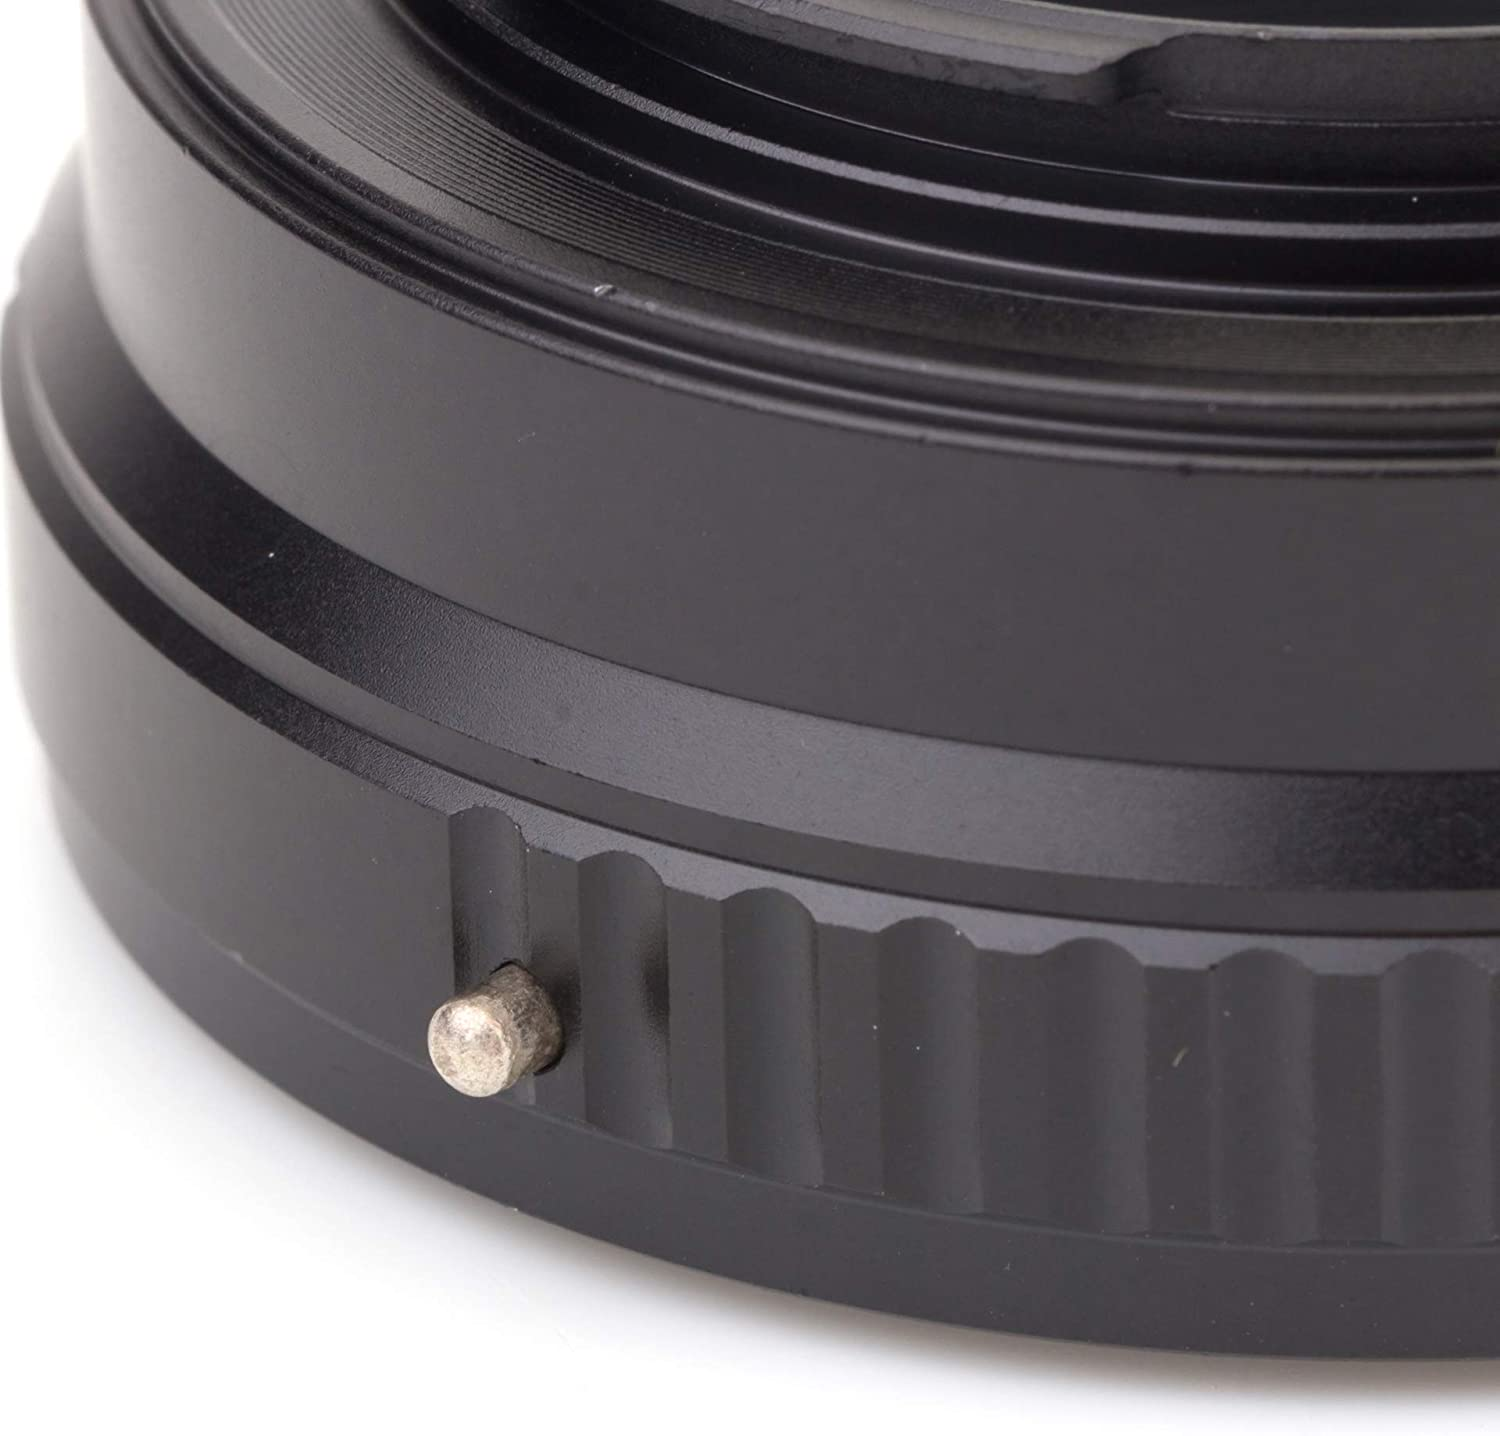 Pixco Lens Adapter for Konica AR K//AR Lens to Canon EOS M2 M EF-M EOS-M Mirrorless Camera Adapter Canon M50 M6 M5 M10 M3 M2